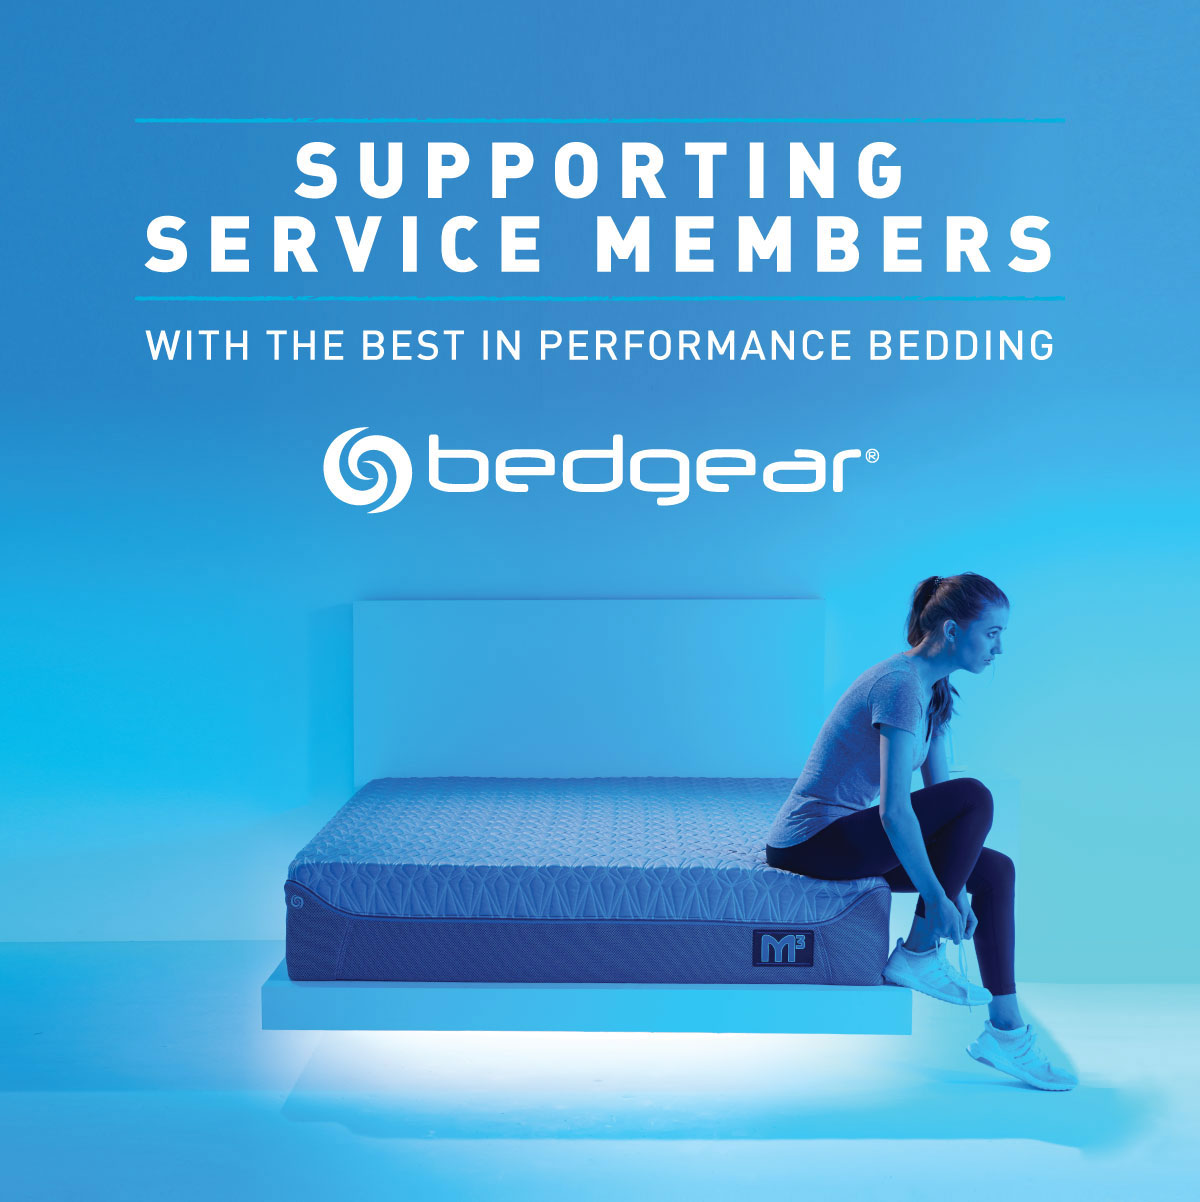 Supporting Service Members with the Best in Performance Bedding